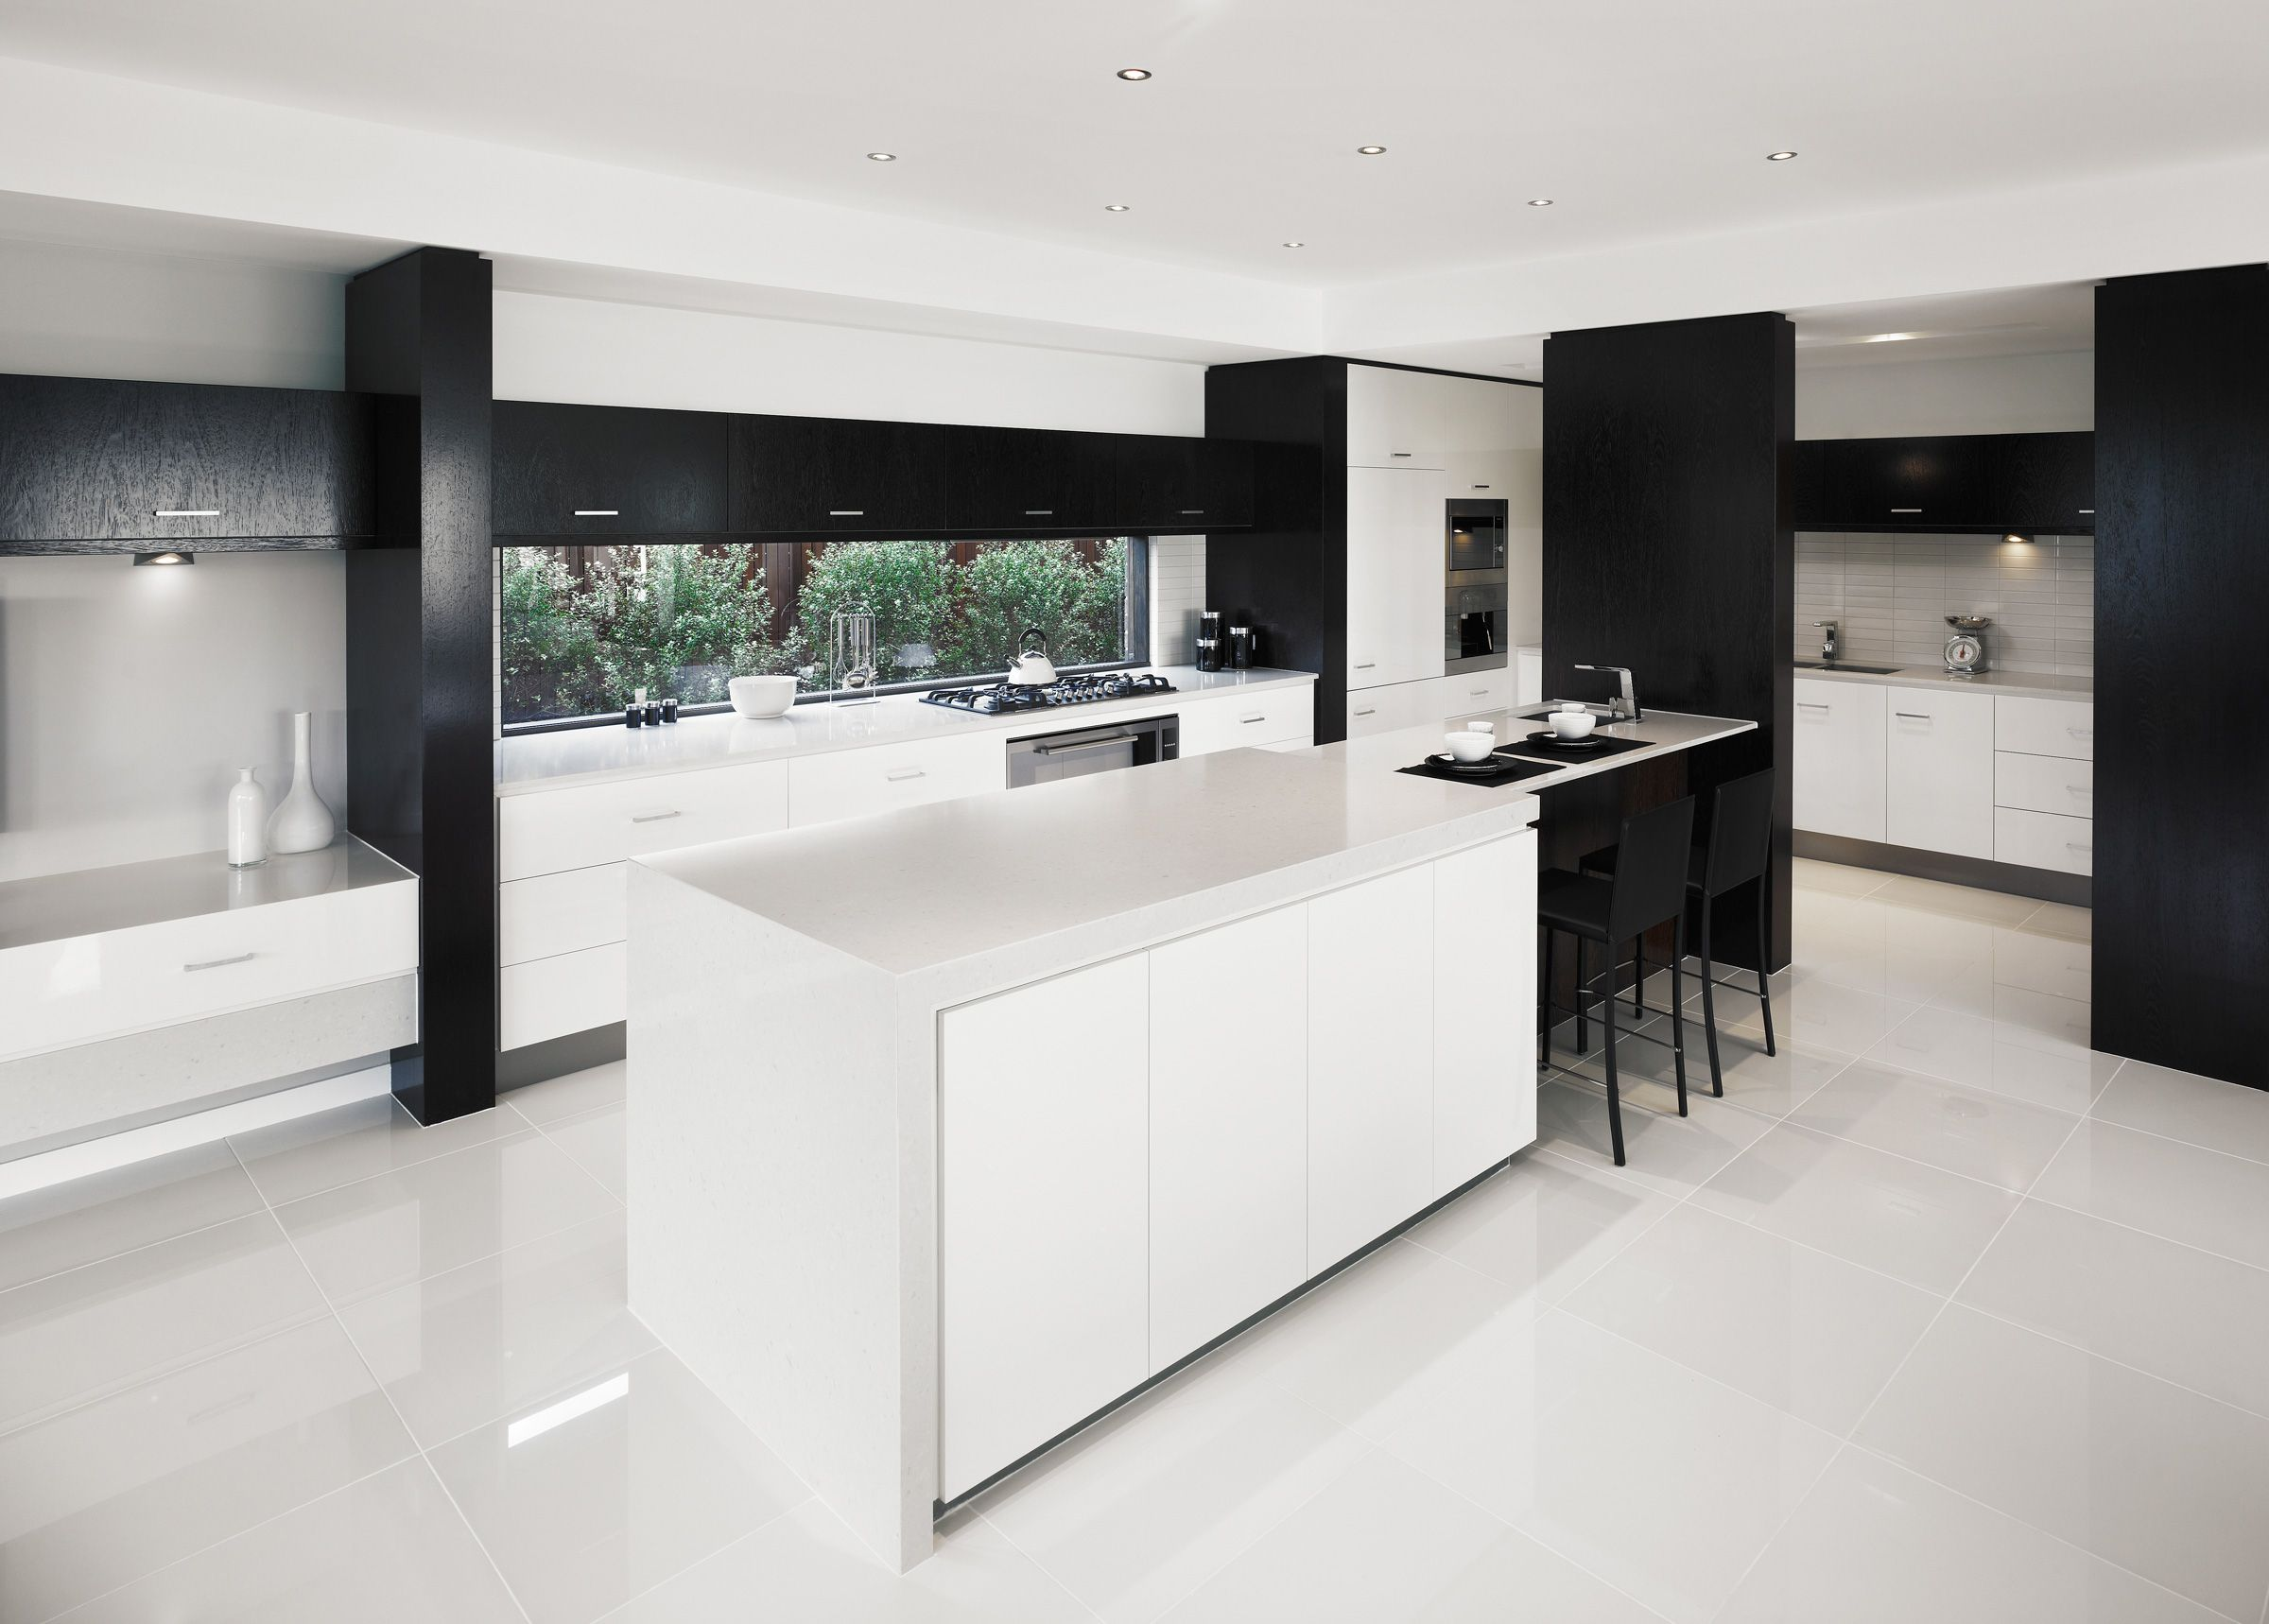 Luxury White Cubicle Island Kitchen Bench Tops With Black